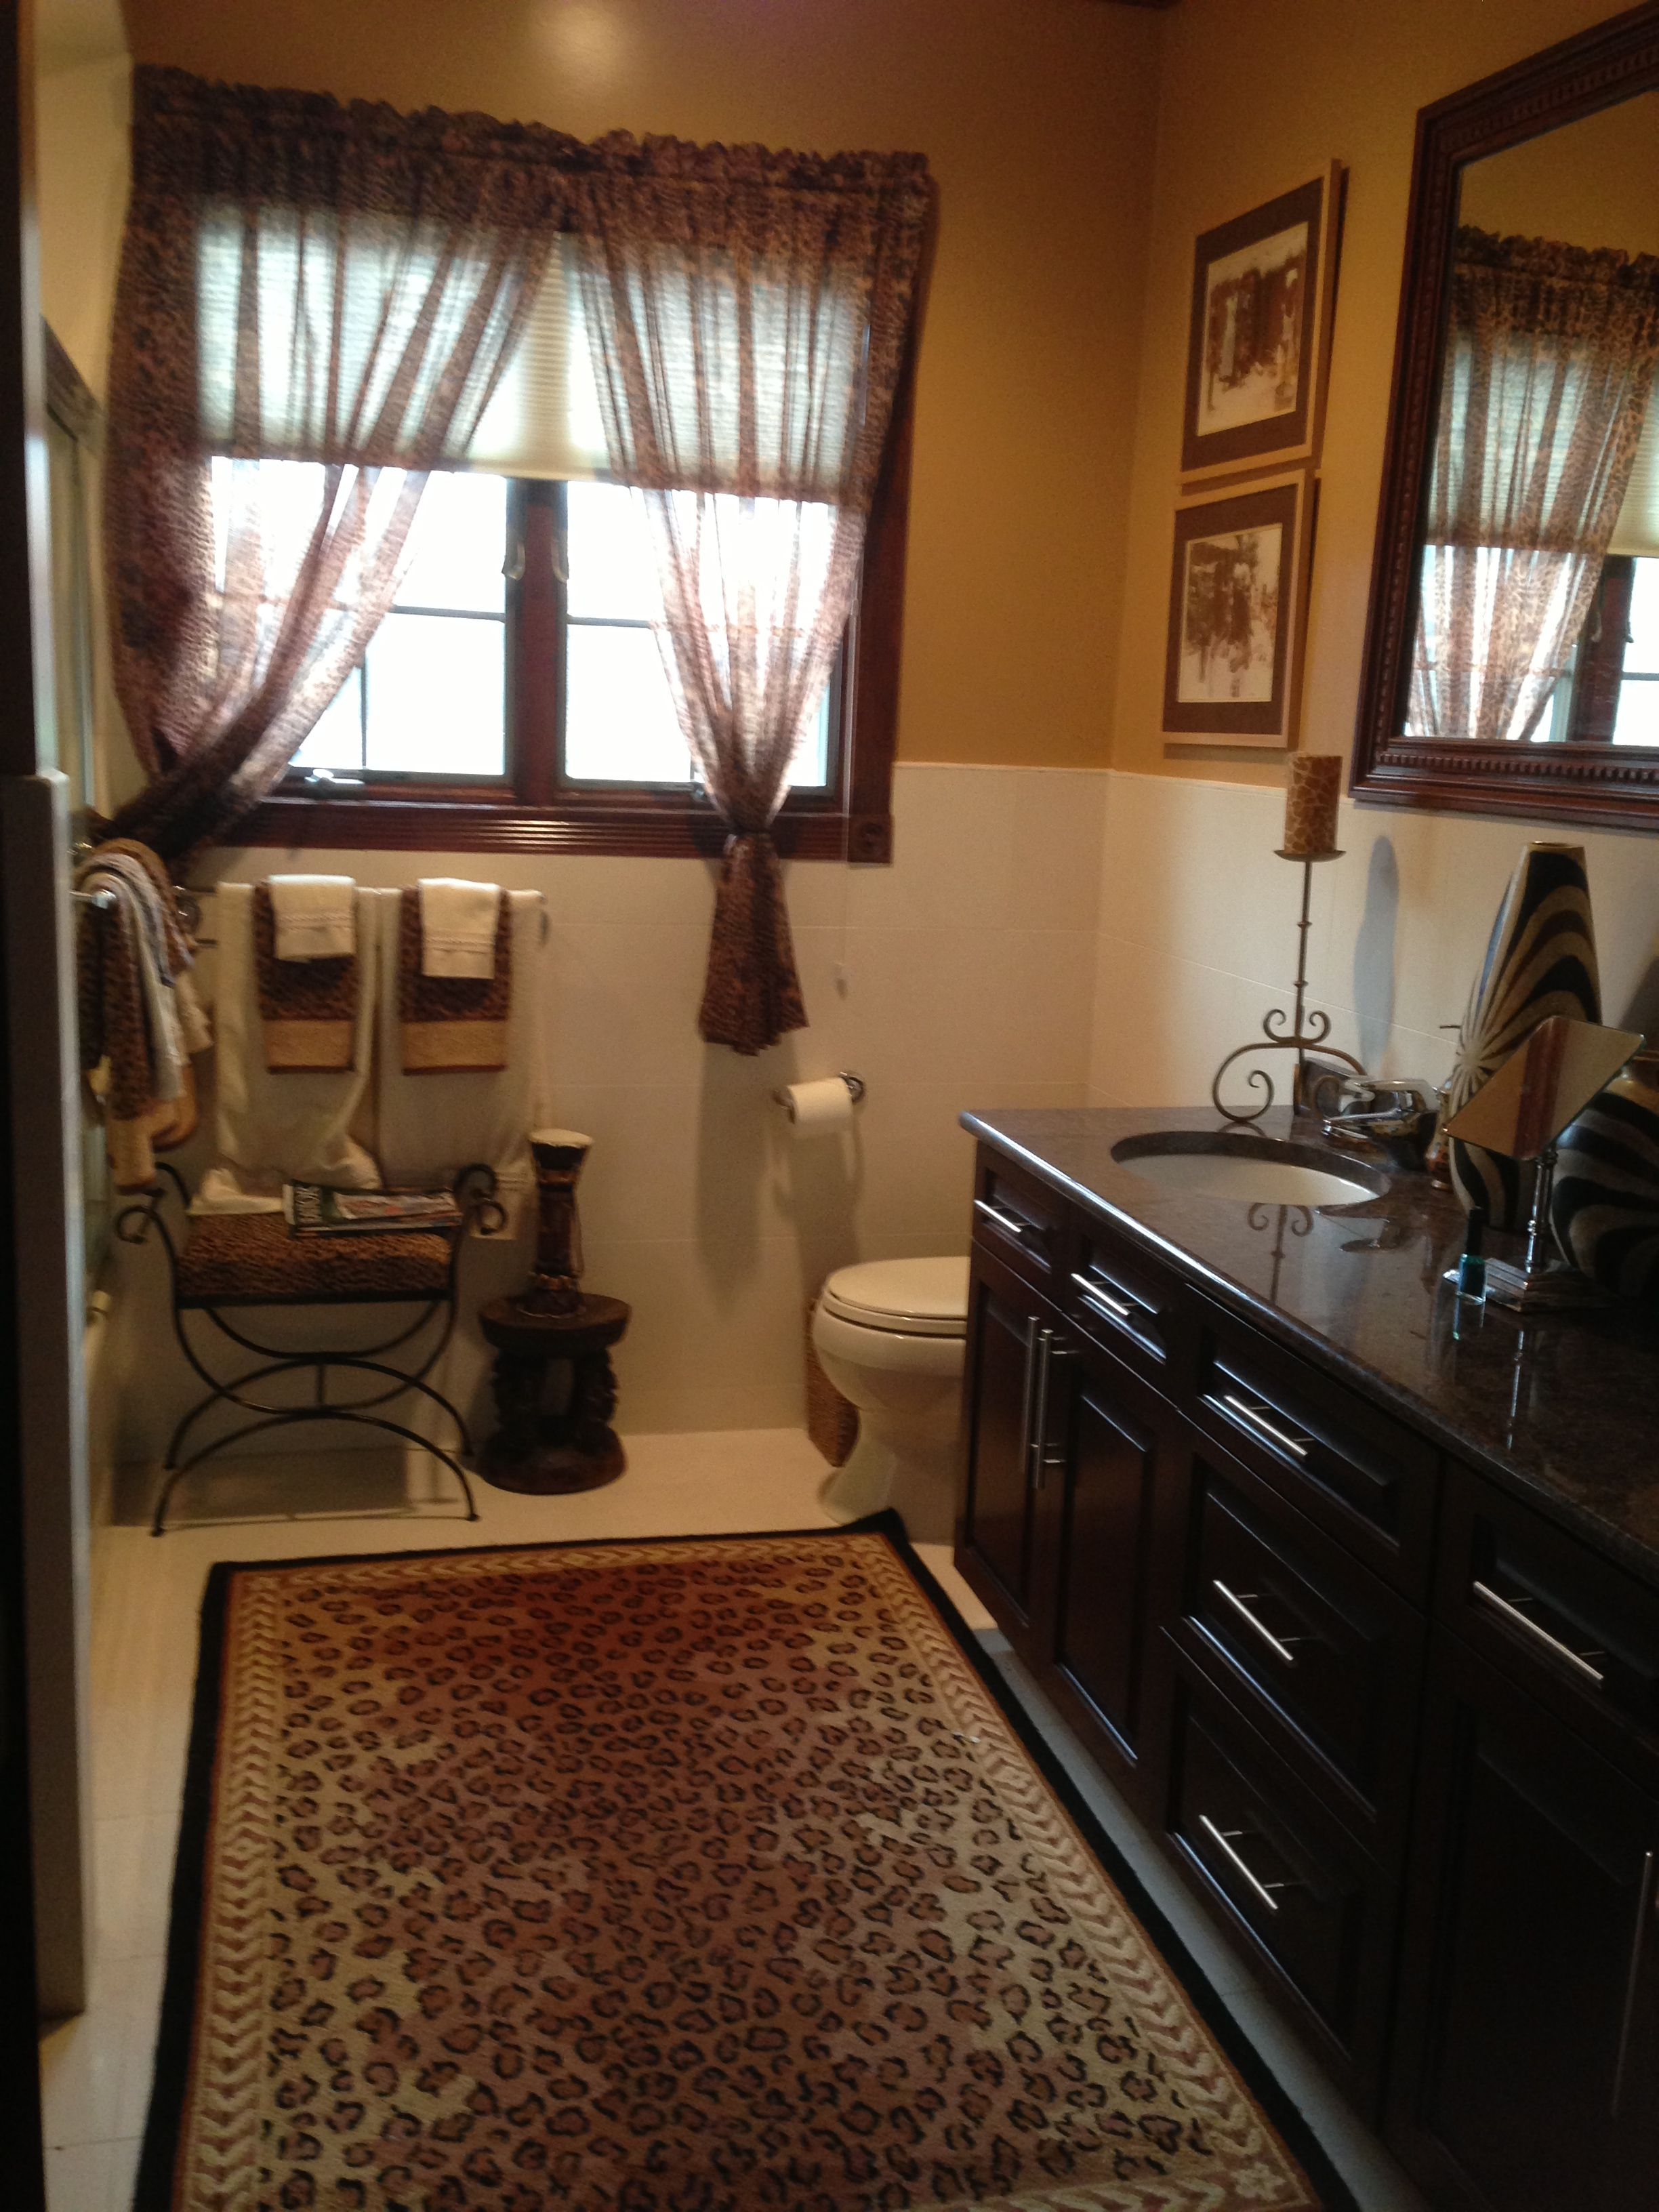 Style Bathroom With Leopard Print